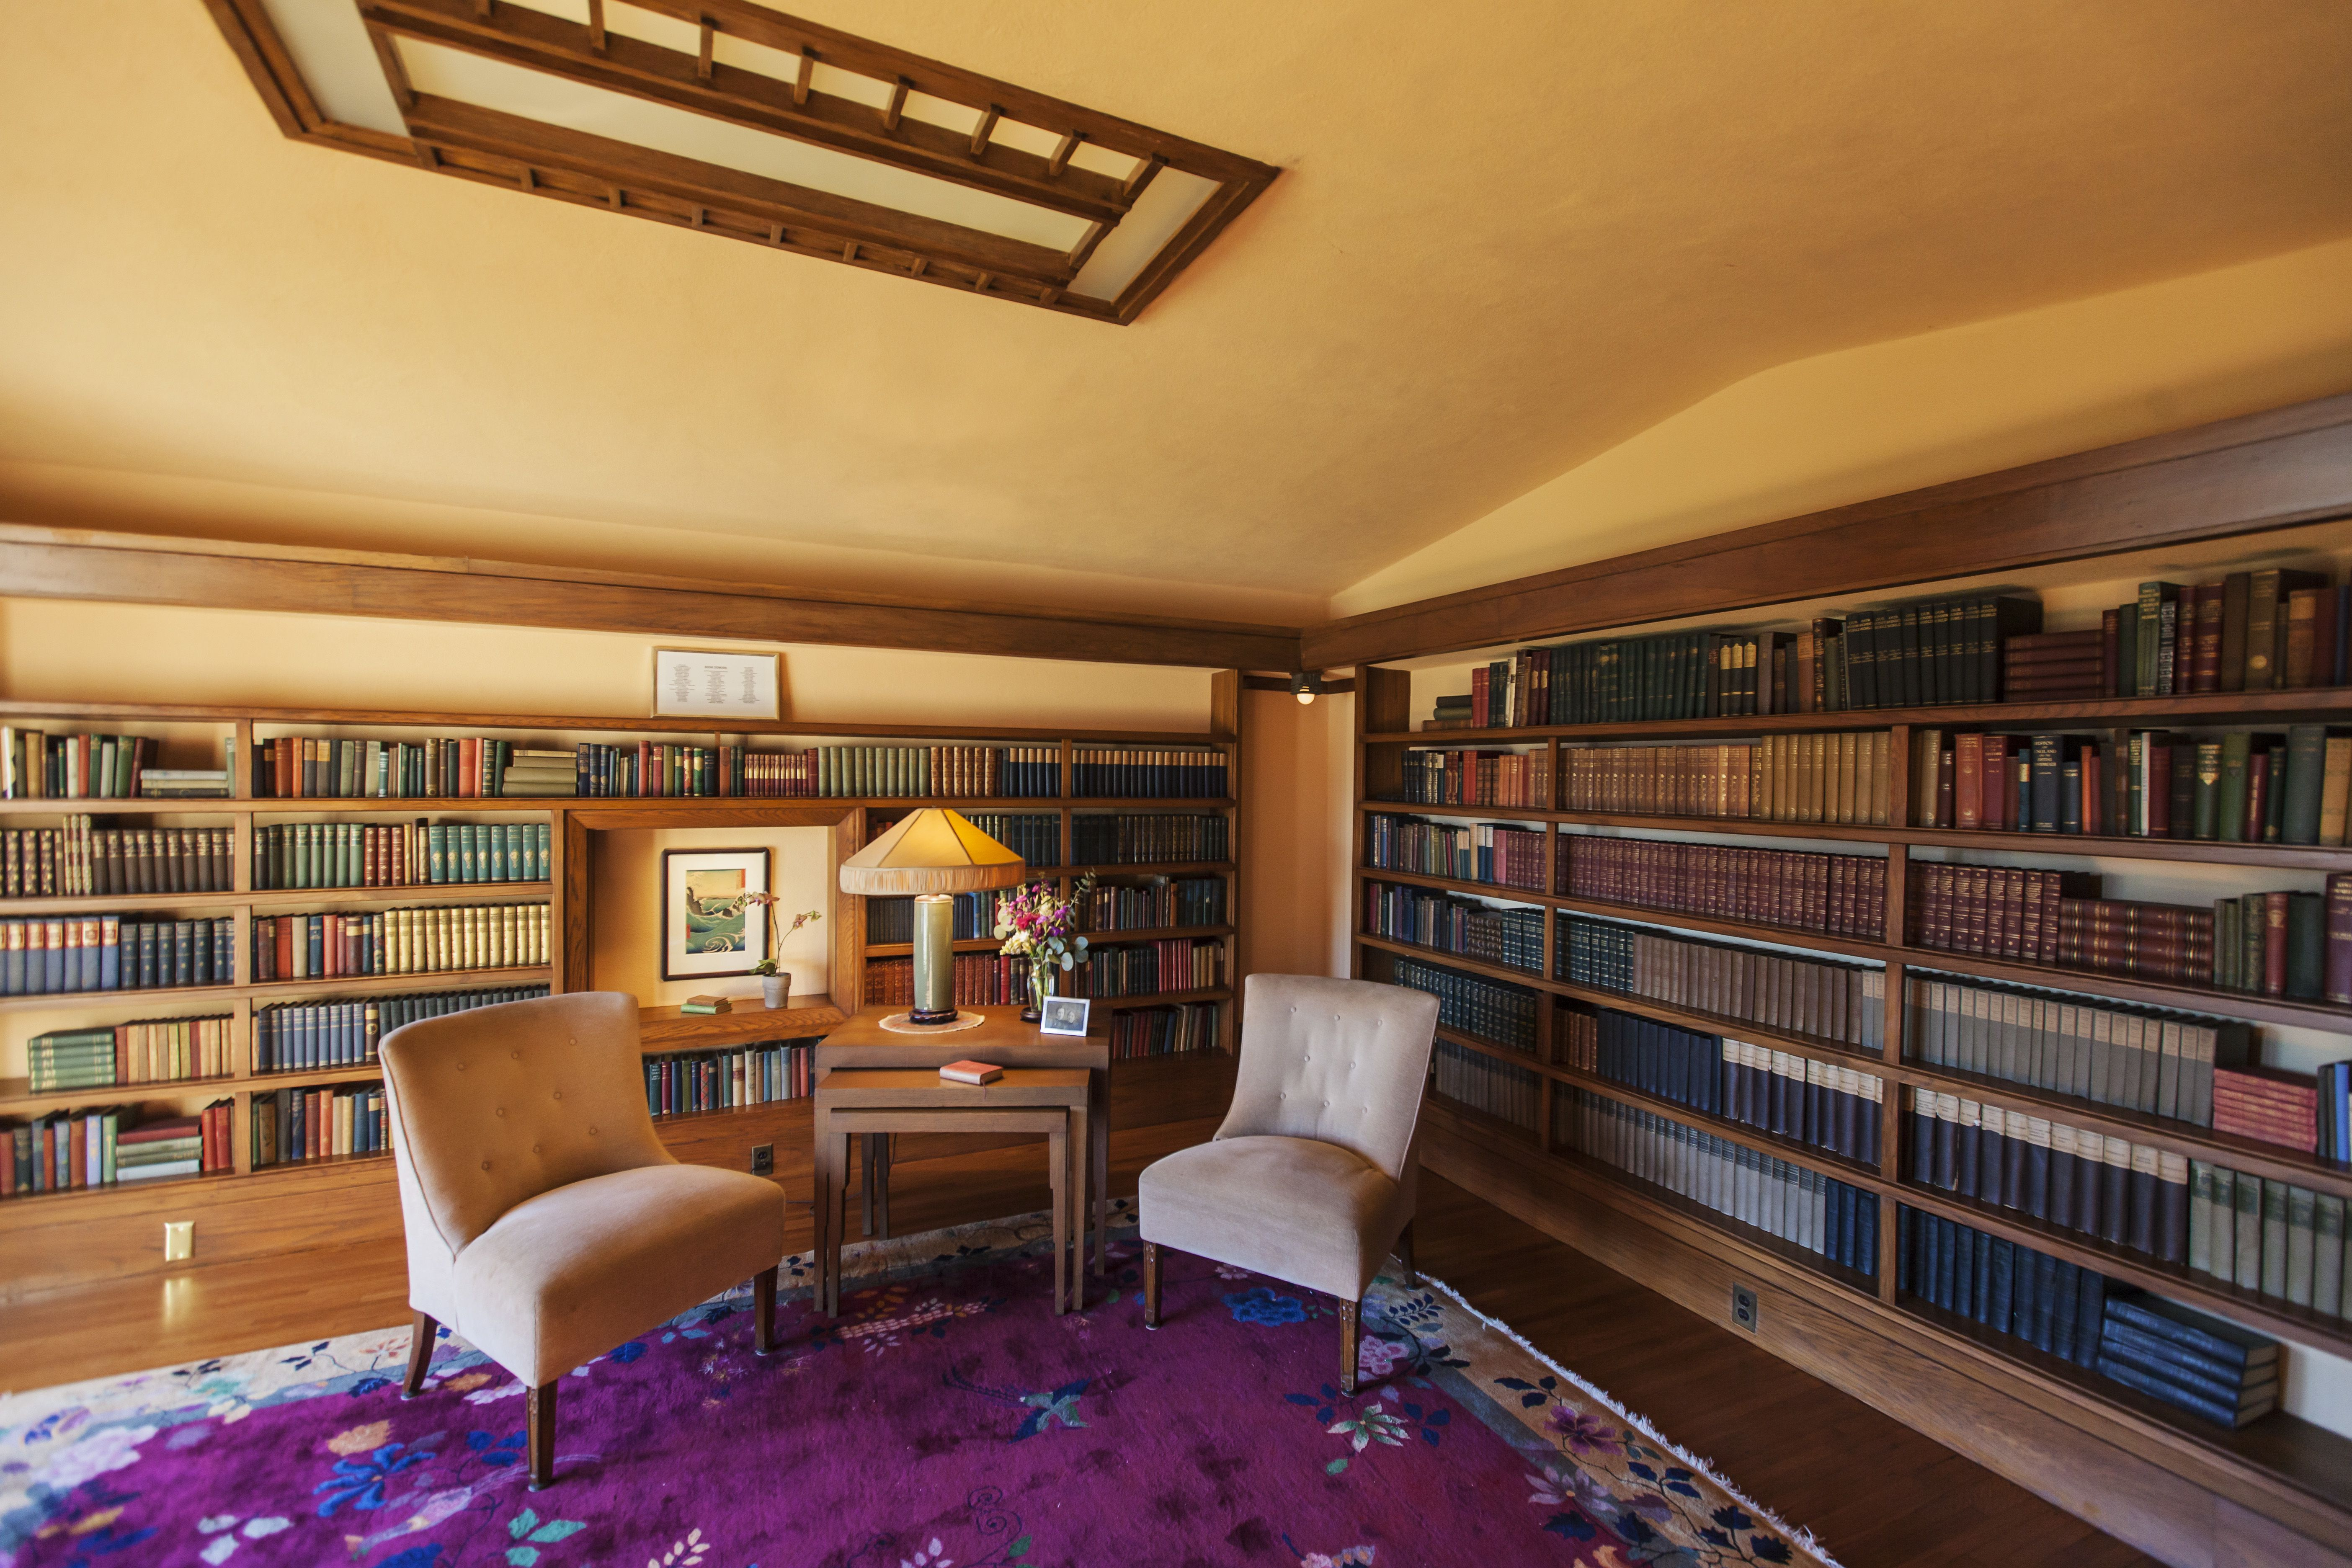 Interior library of Frank Lloyd Wright's Hollyhock House, 1921, built for Aline Barnsdall in southern California